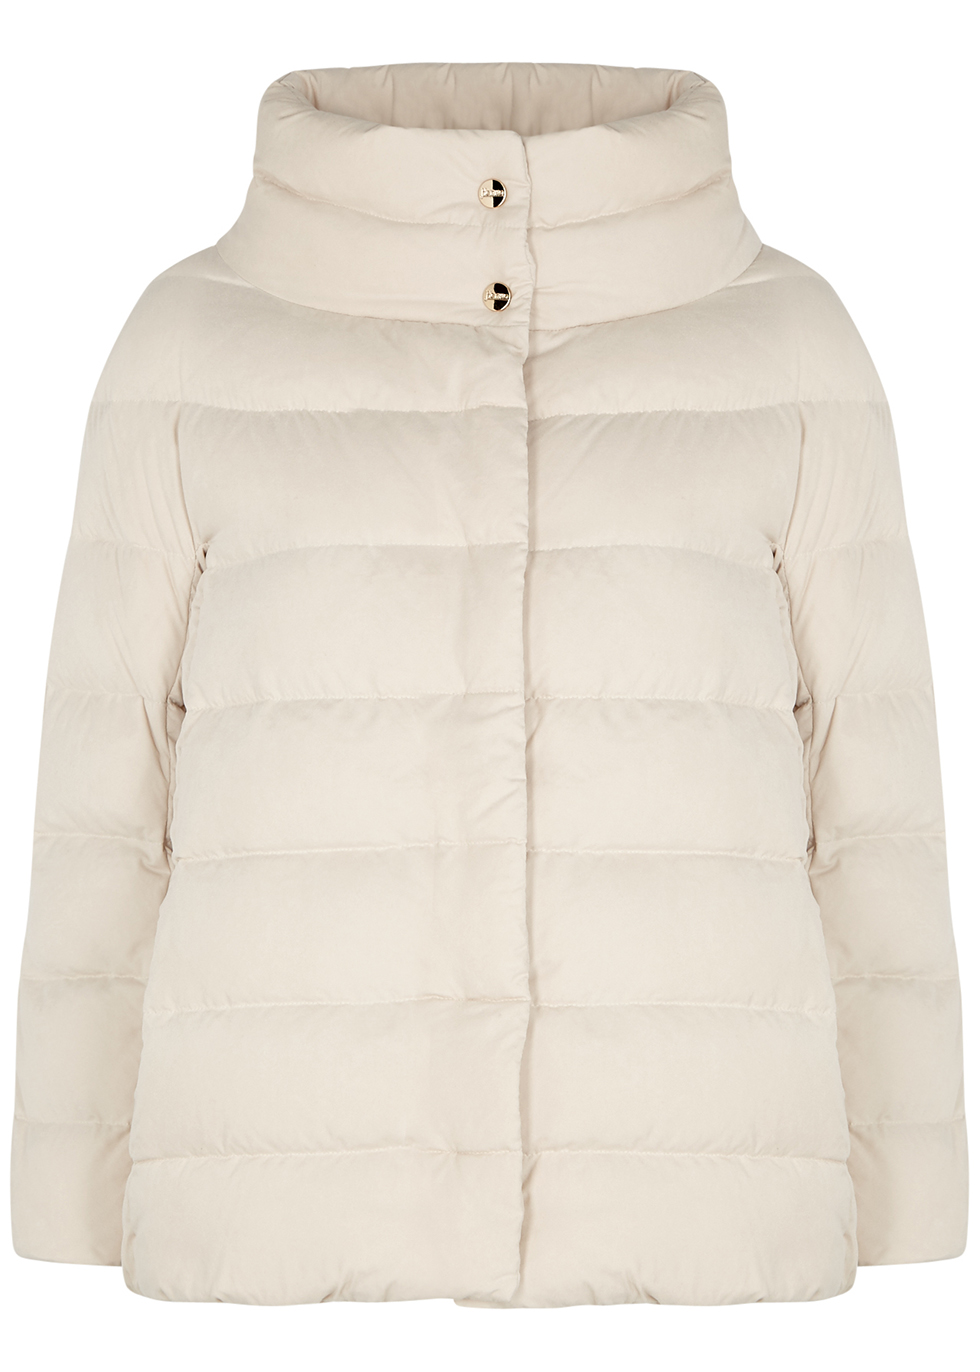 Eolo cream quilted faux suede jacket